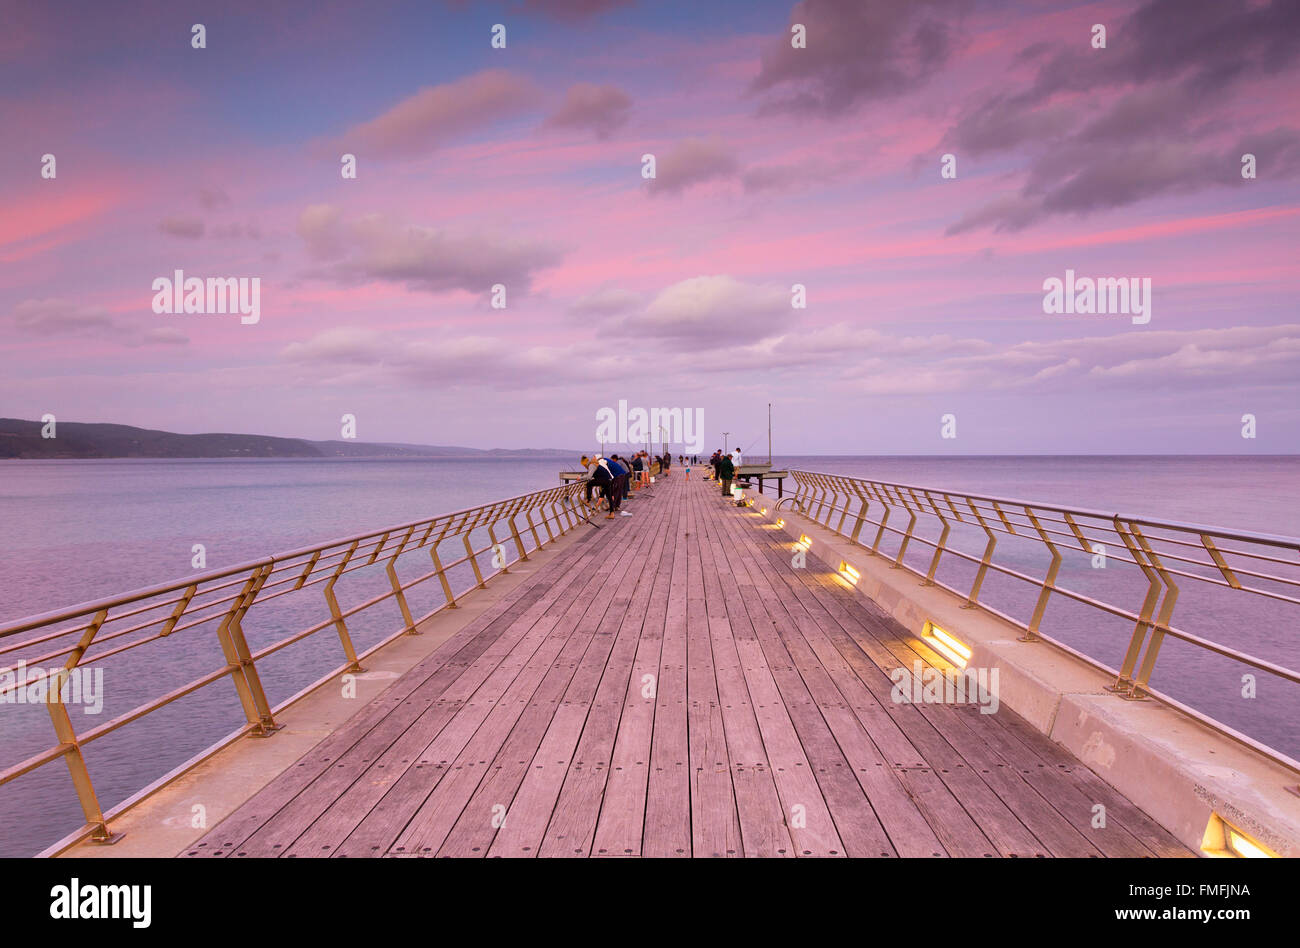 Pier at sunset, Lorne, Great Ocean Road, Victoria, Australia - Stock Image